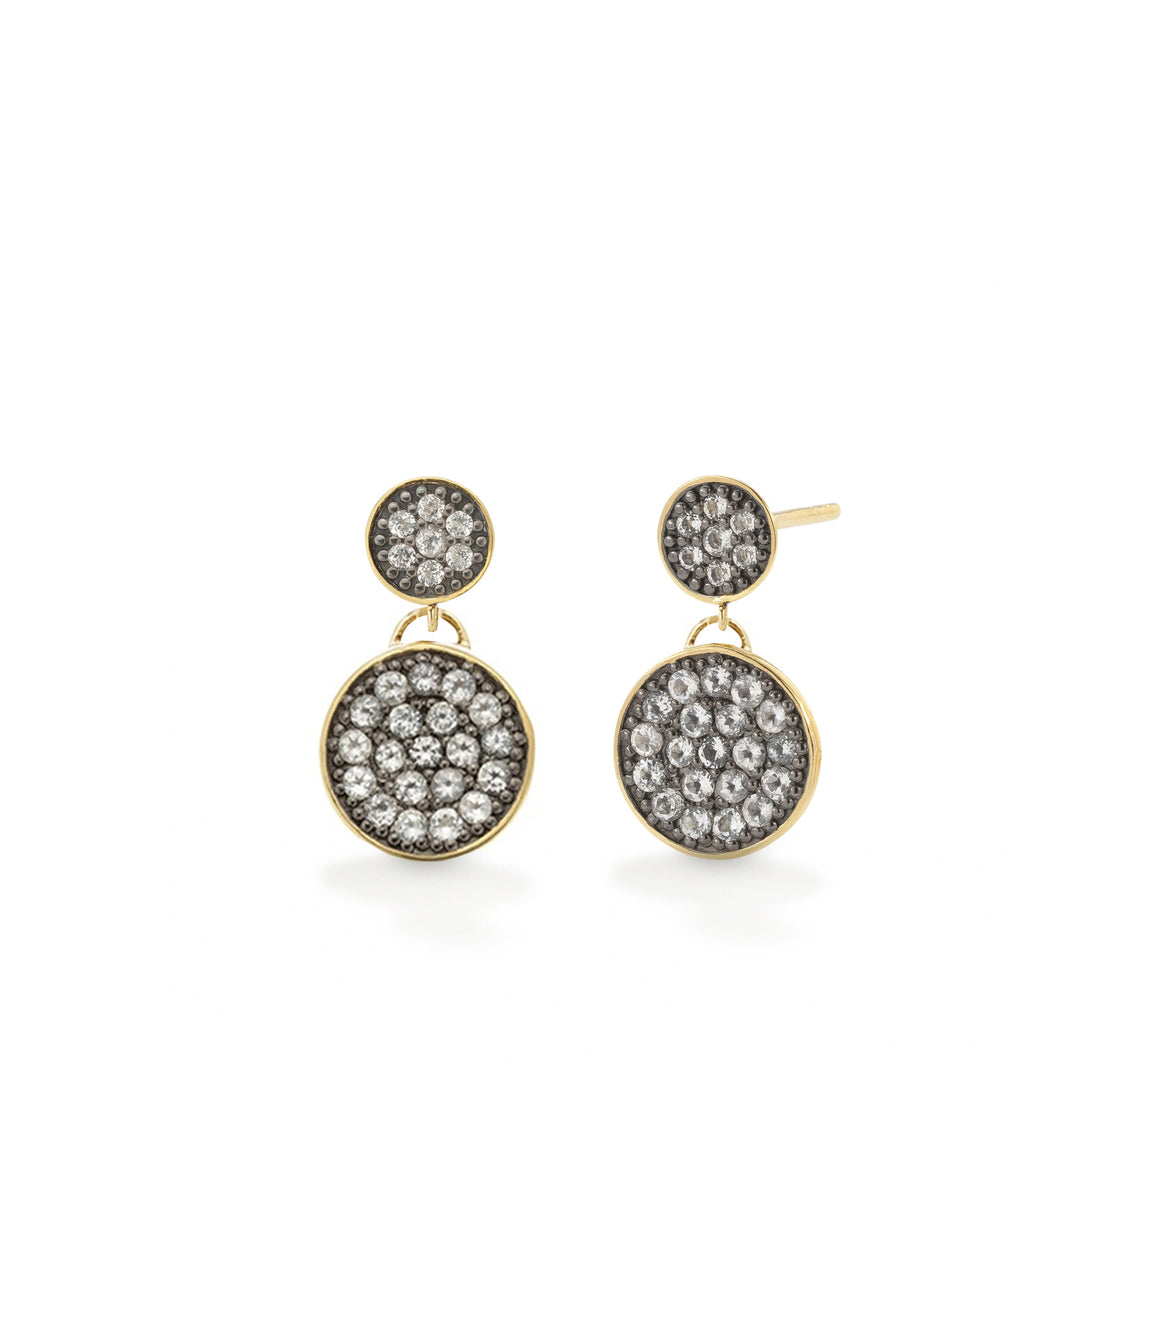 Moonshine Earrings, Yellow Gold